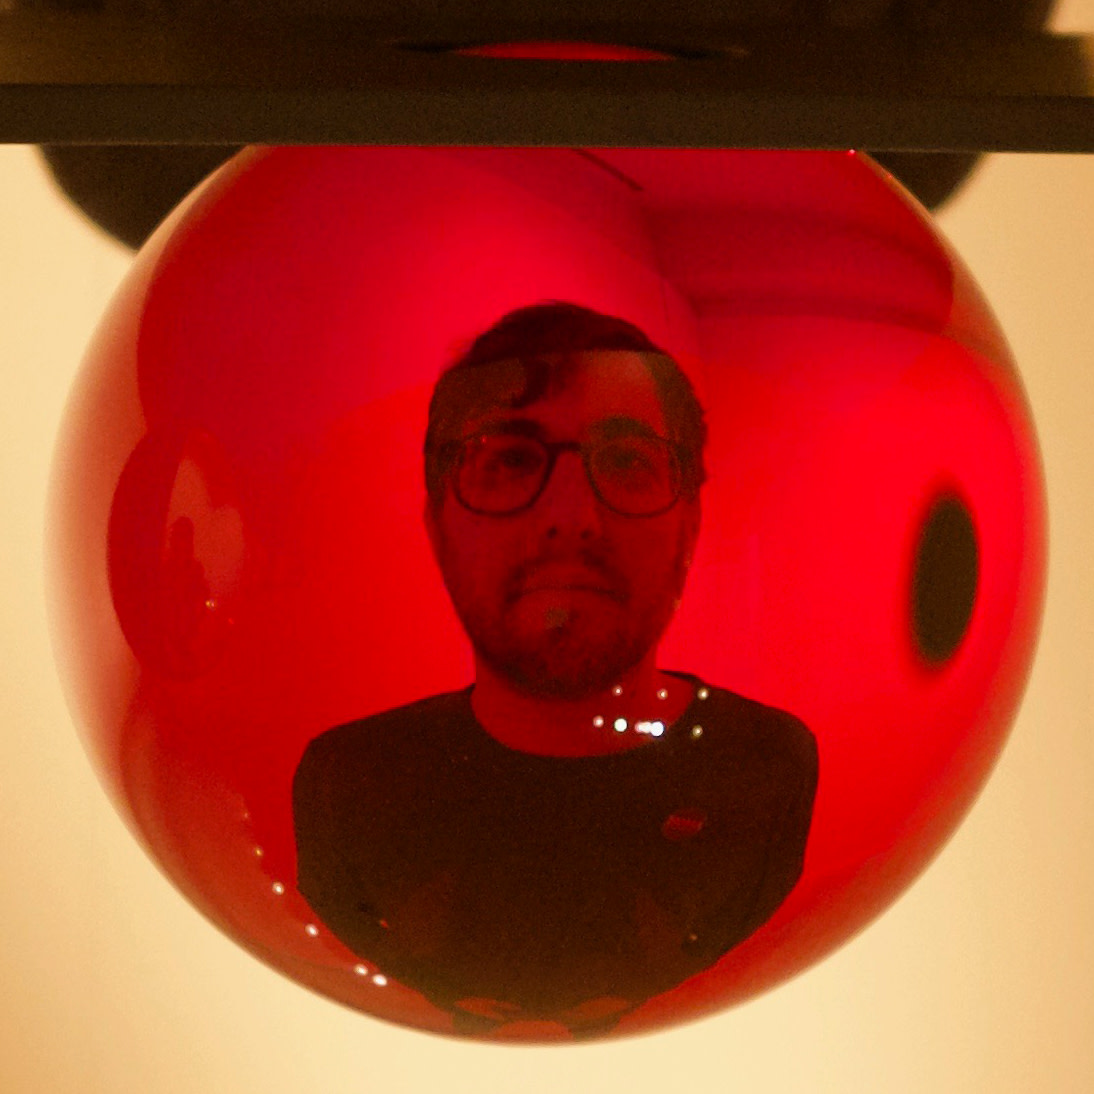 My head distorted as seen through a red glass sphere.